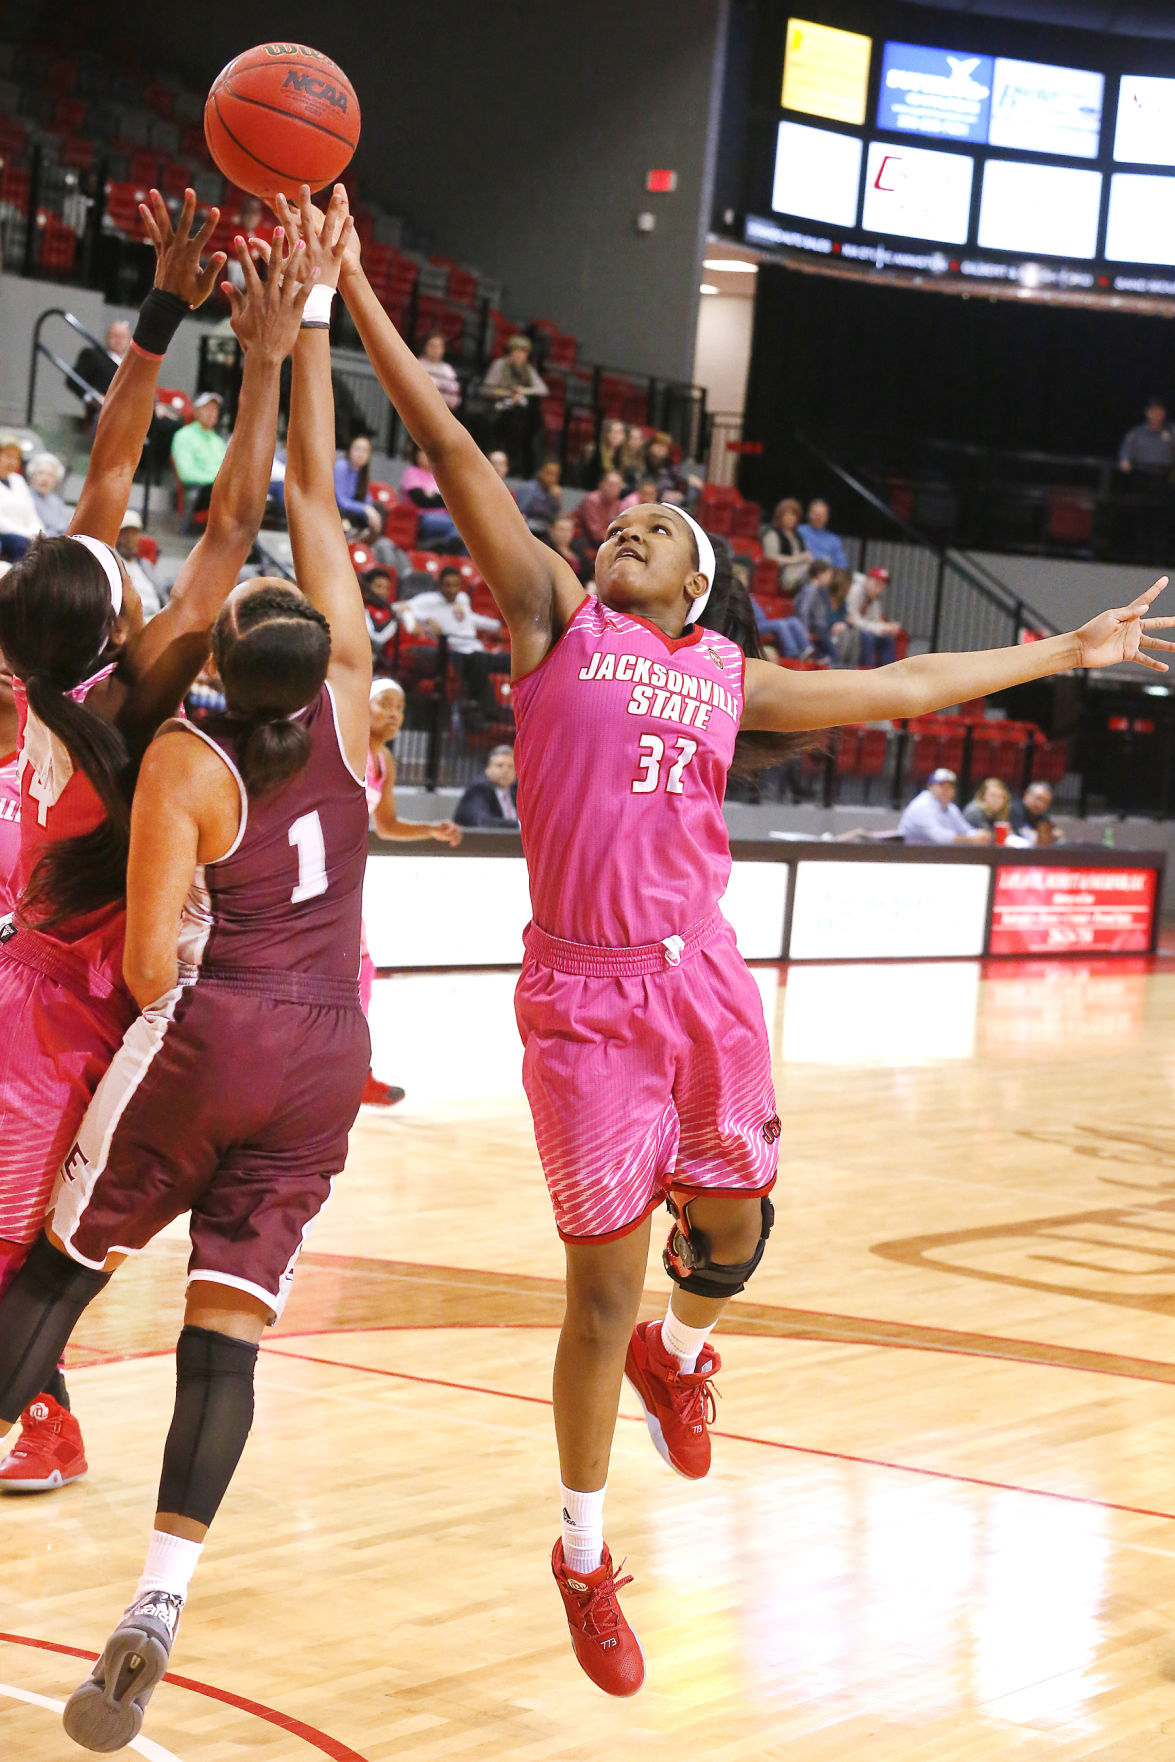 EKU vs JSU Womens Basketball | Slideshows | annistonstar.com